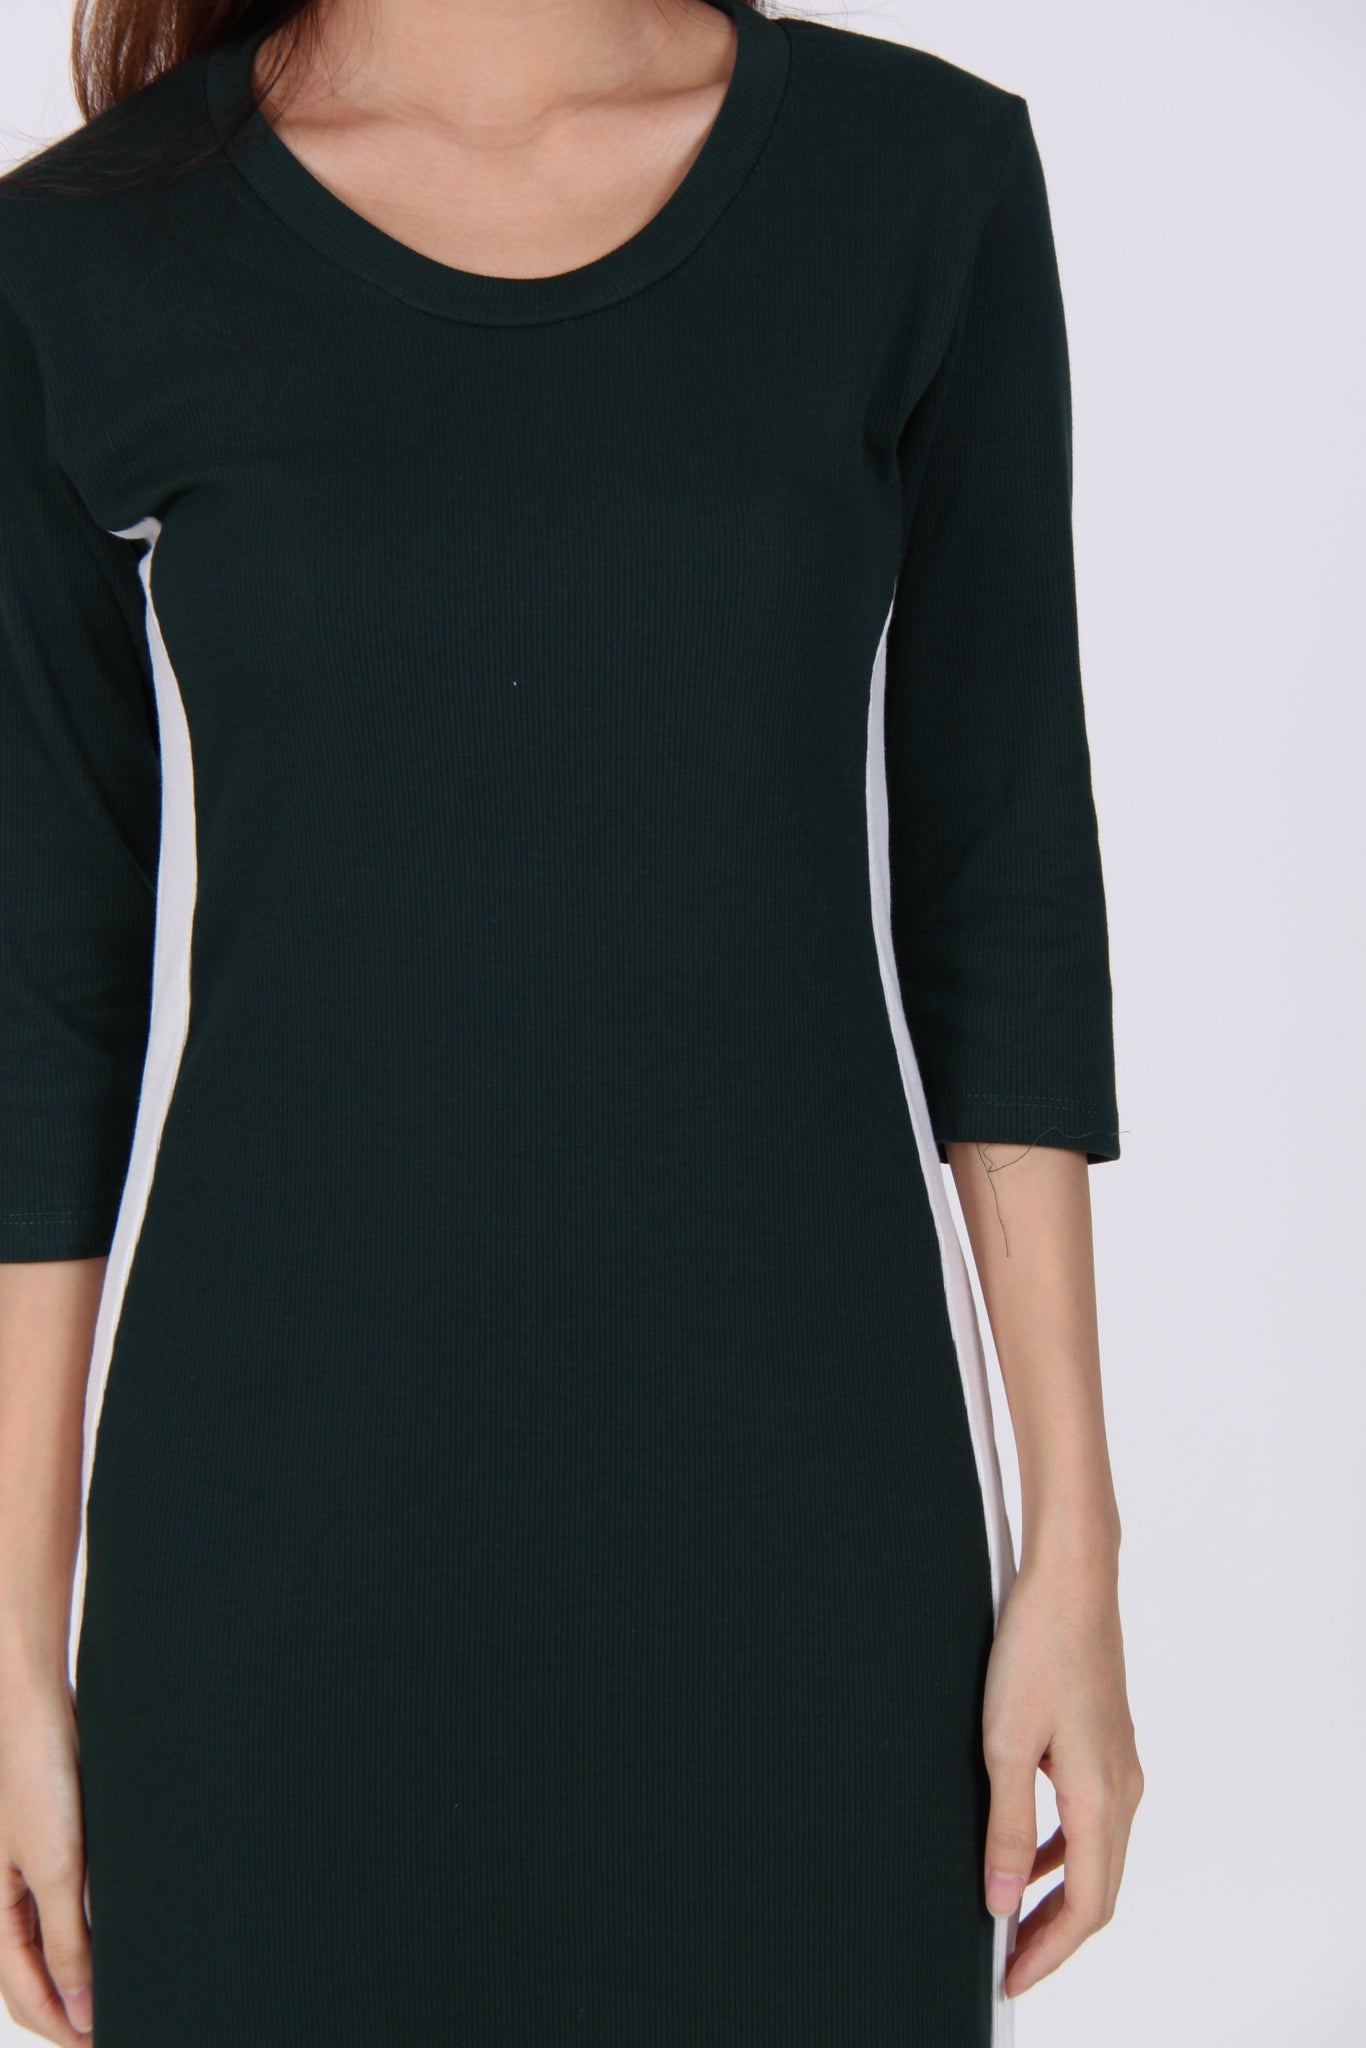 Contrast Quarter Sleeve Side Slit Midi Dress in Dark Green